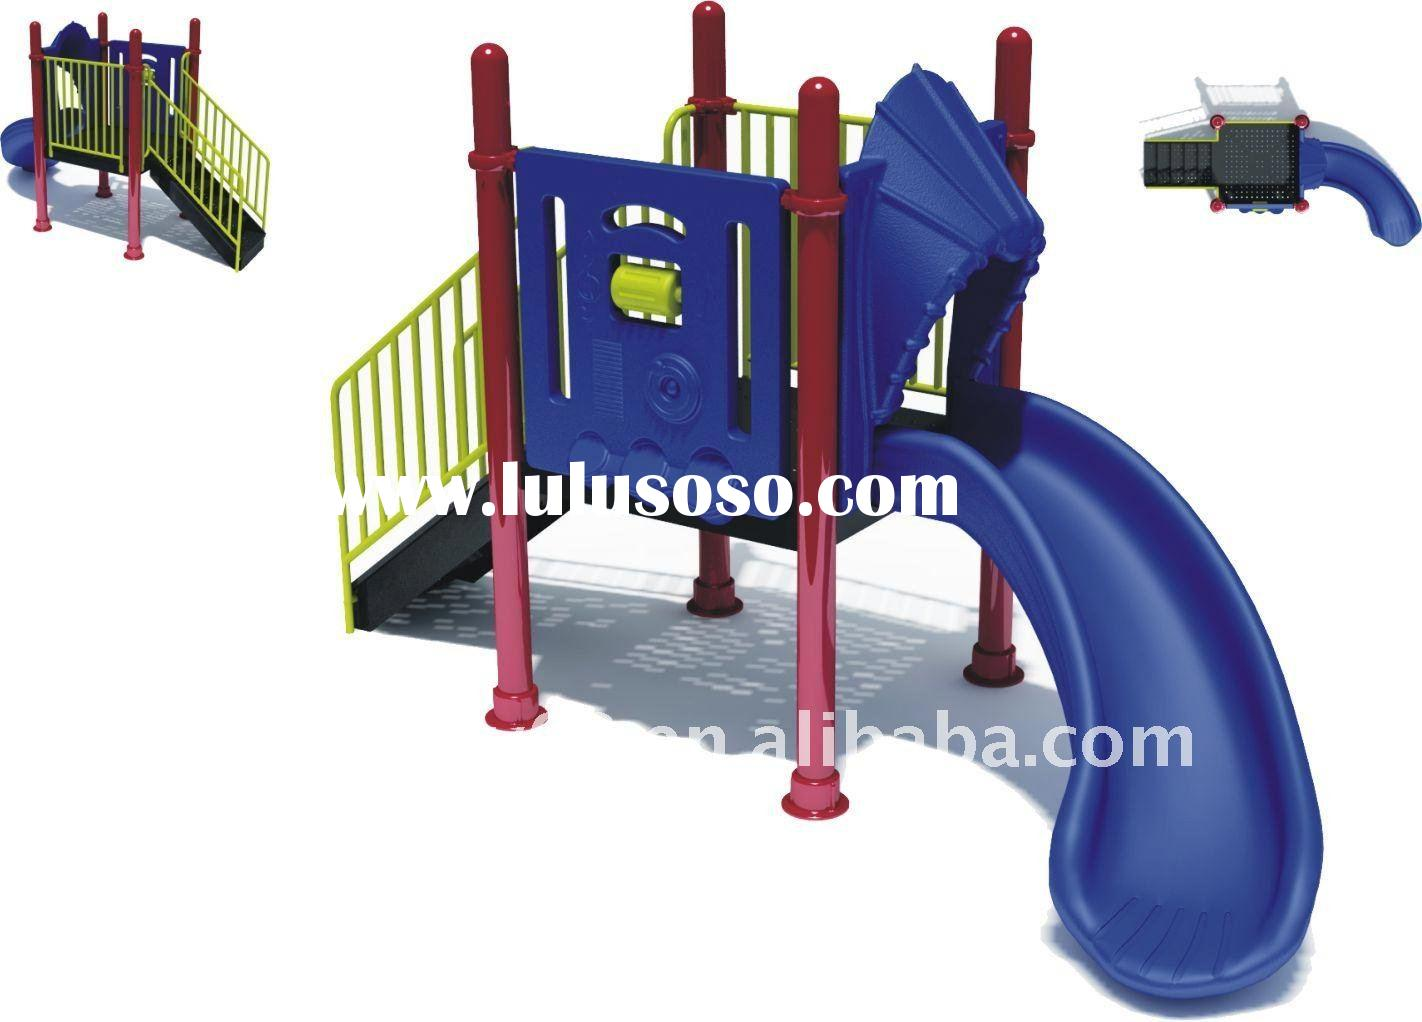 school bus play structure